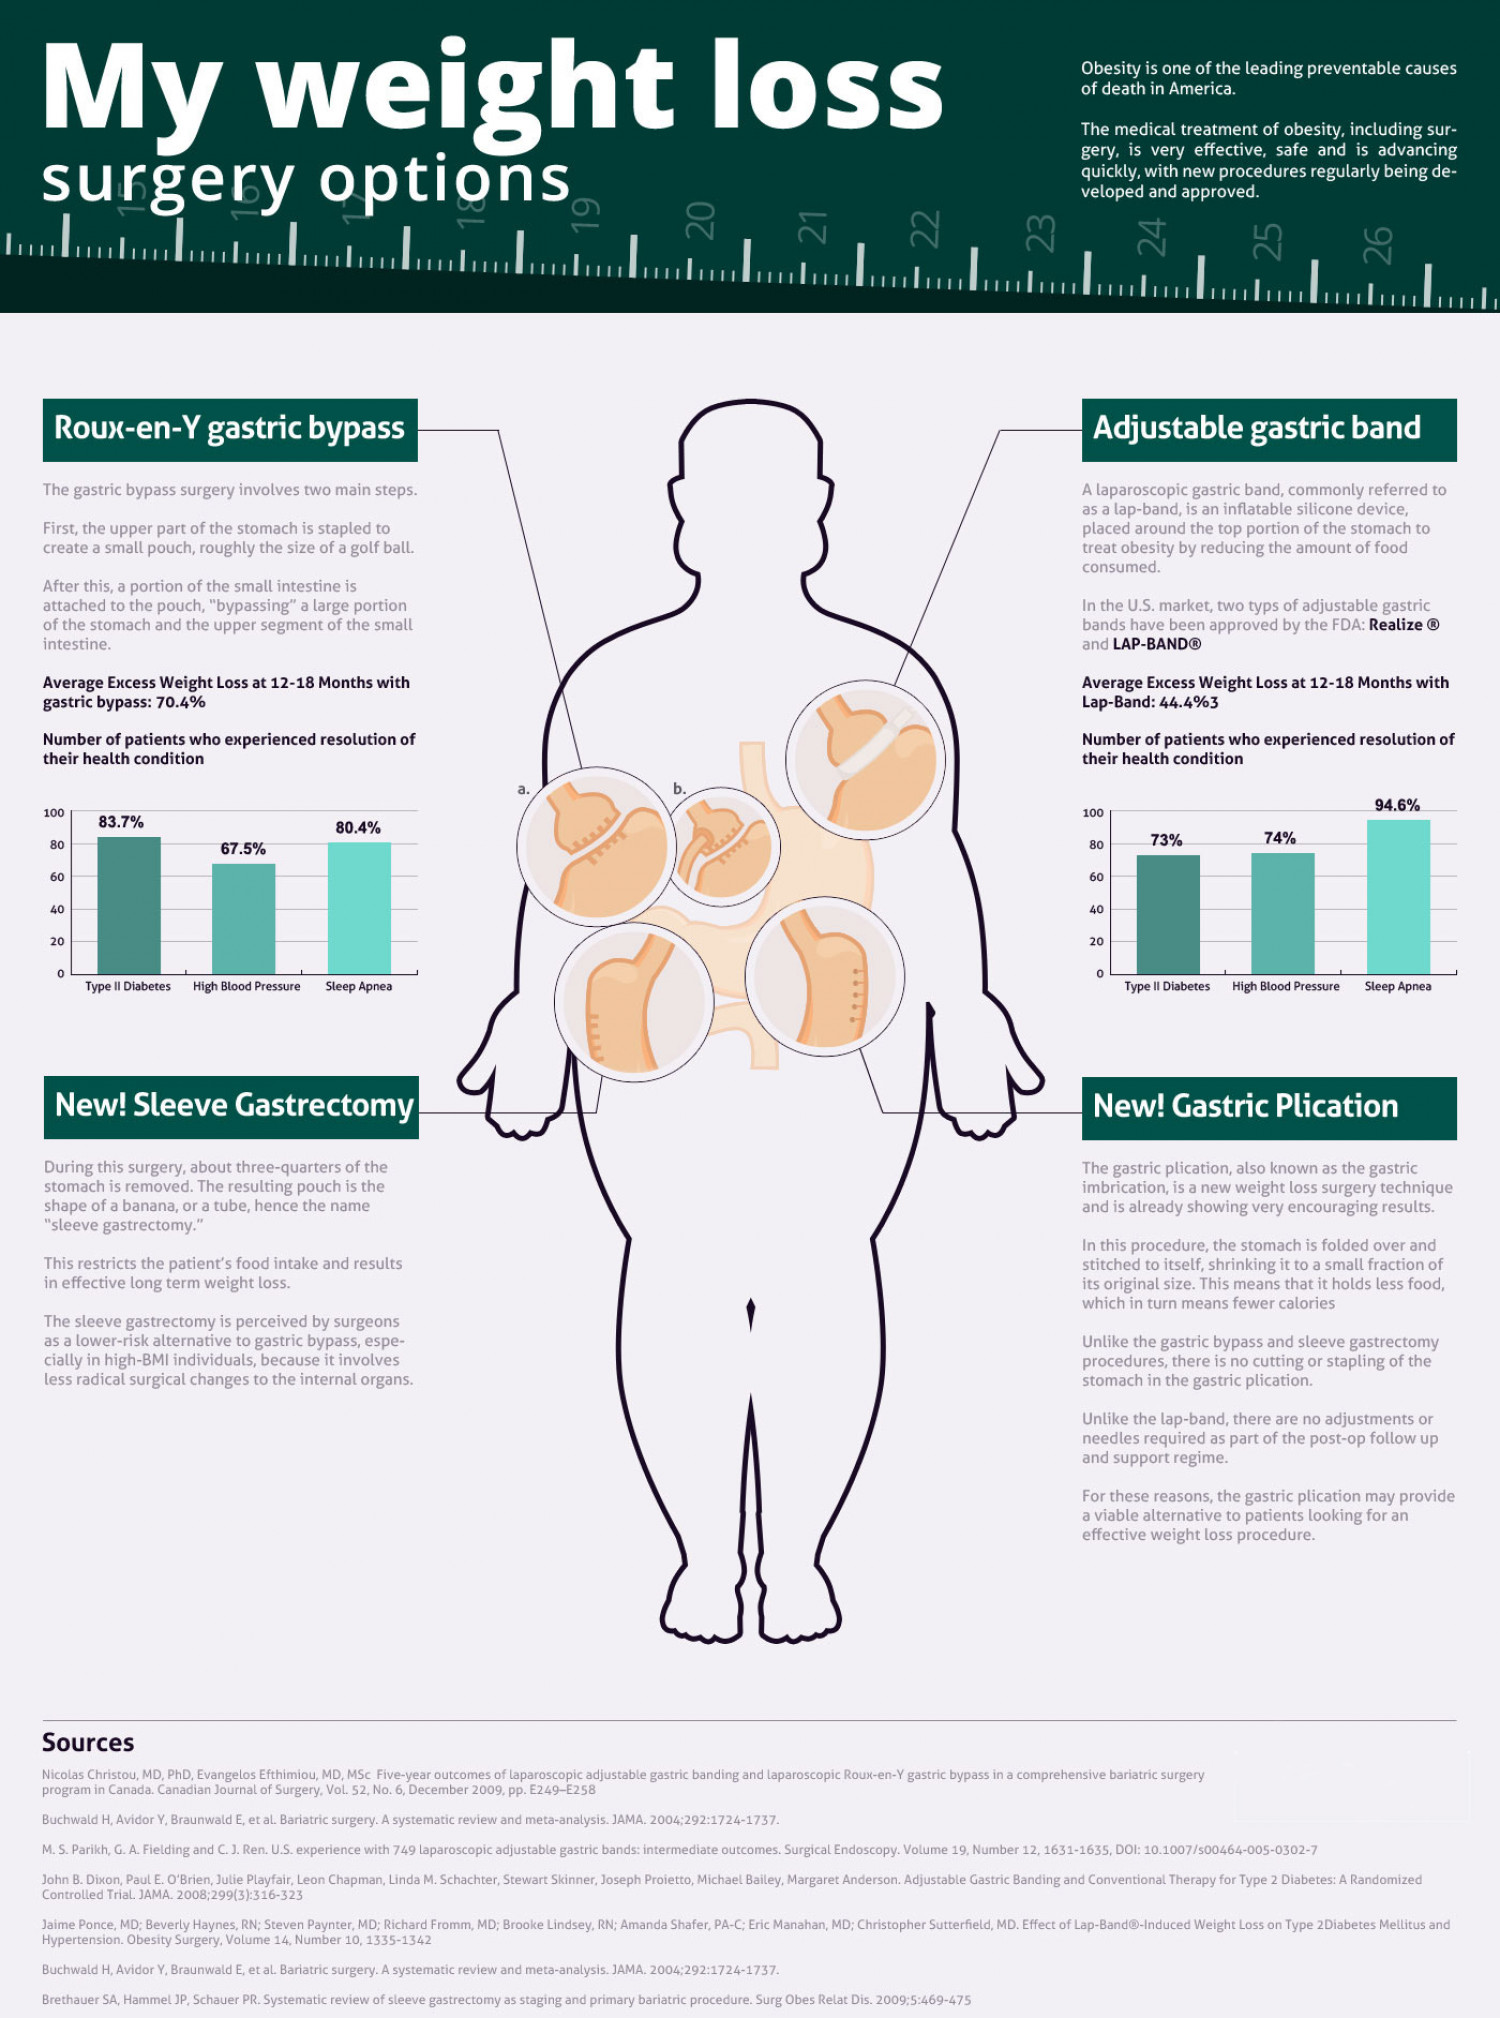 Weight loss Surgery Options Infographic